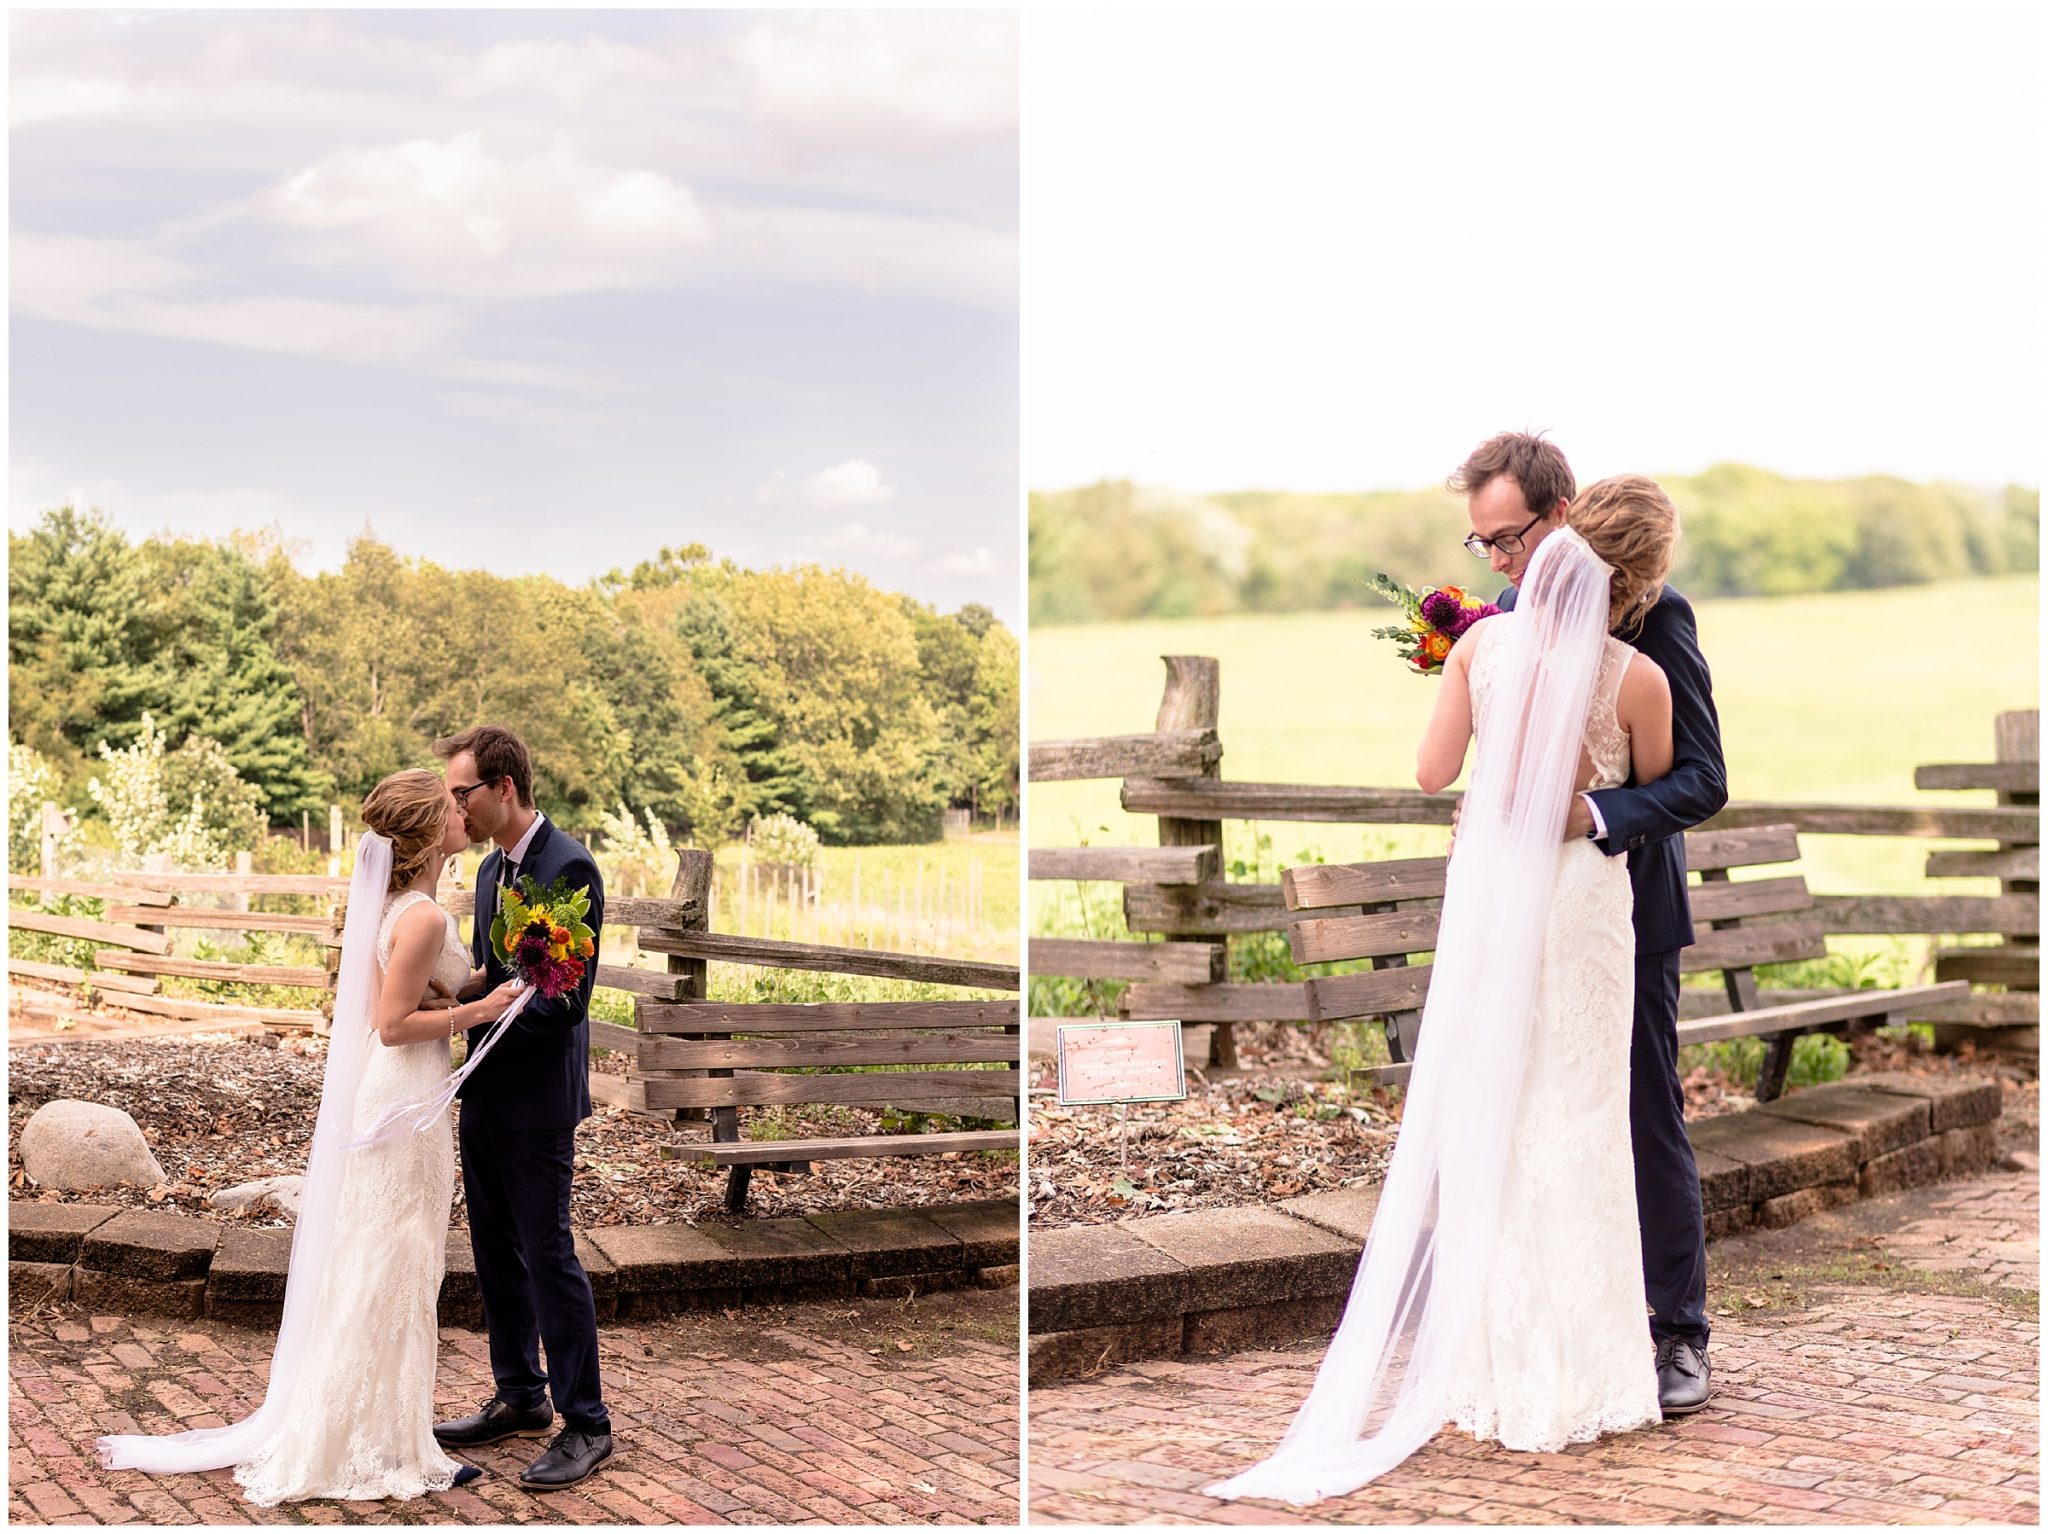 Wildlife Prairie Park Wedding Peoria Illinois_0120